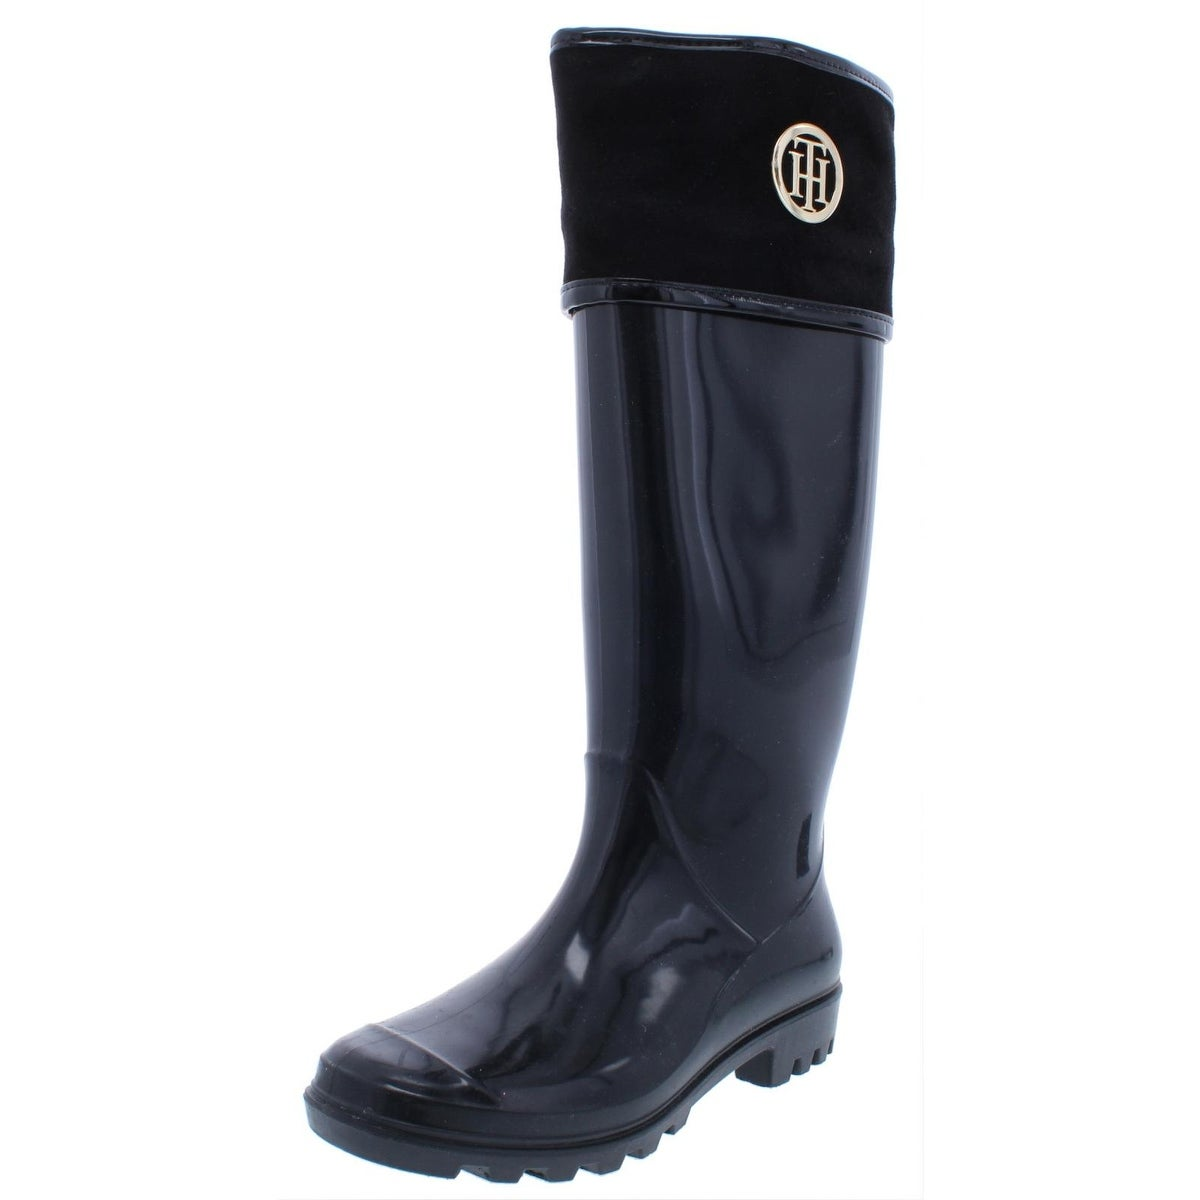 5a3ddd30b29 Buy Tommy Hilfiger Women s Boots Online at Overstock